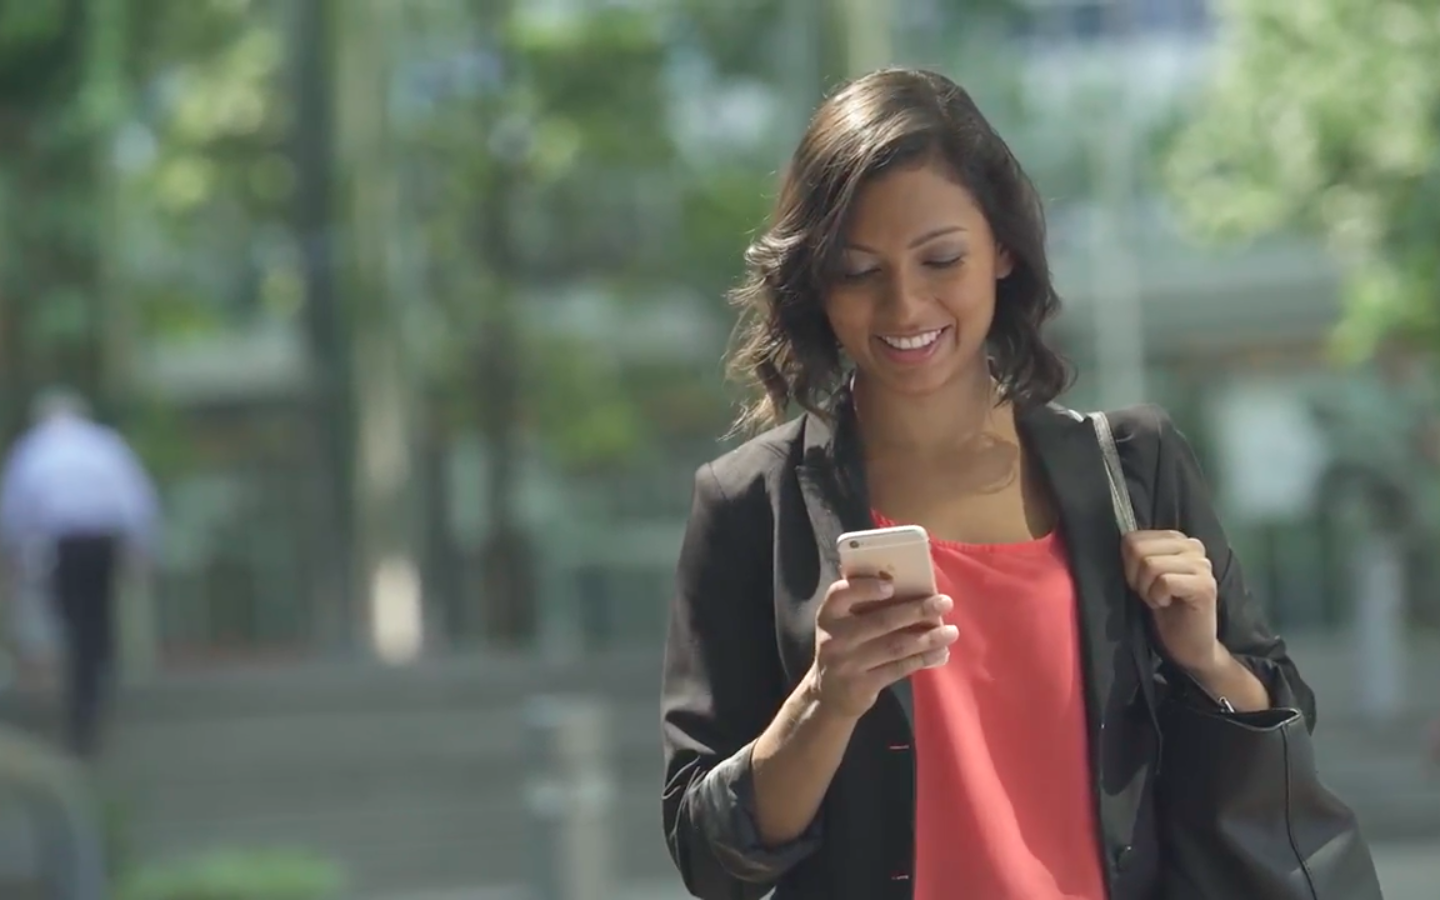 Screenshot from Anthem Blue Cross Mobile Health video